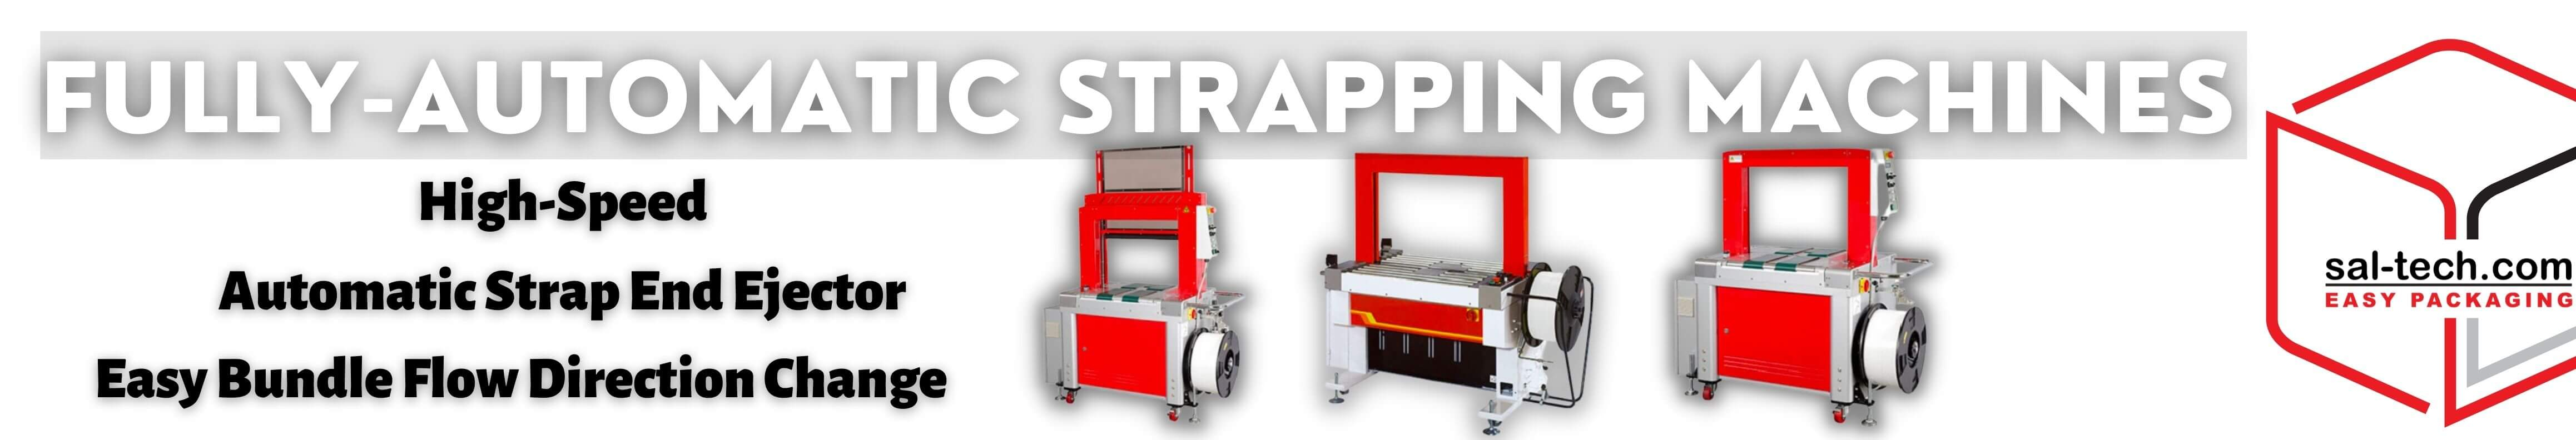 FULLY-AUTOMATIC STRAPPING MACHINES